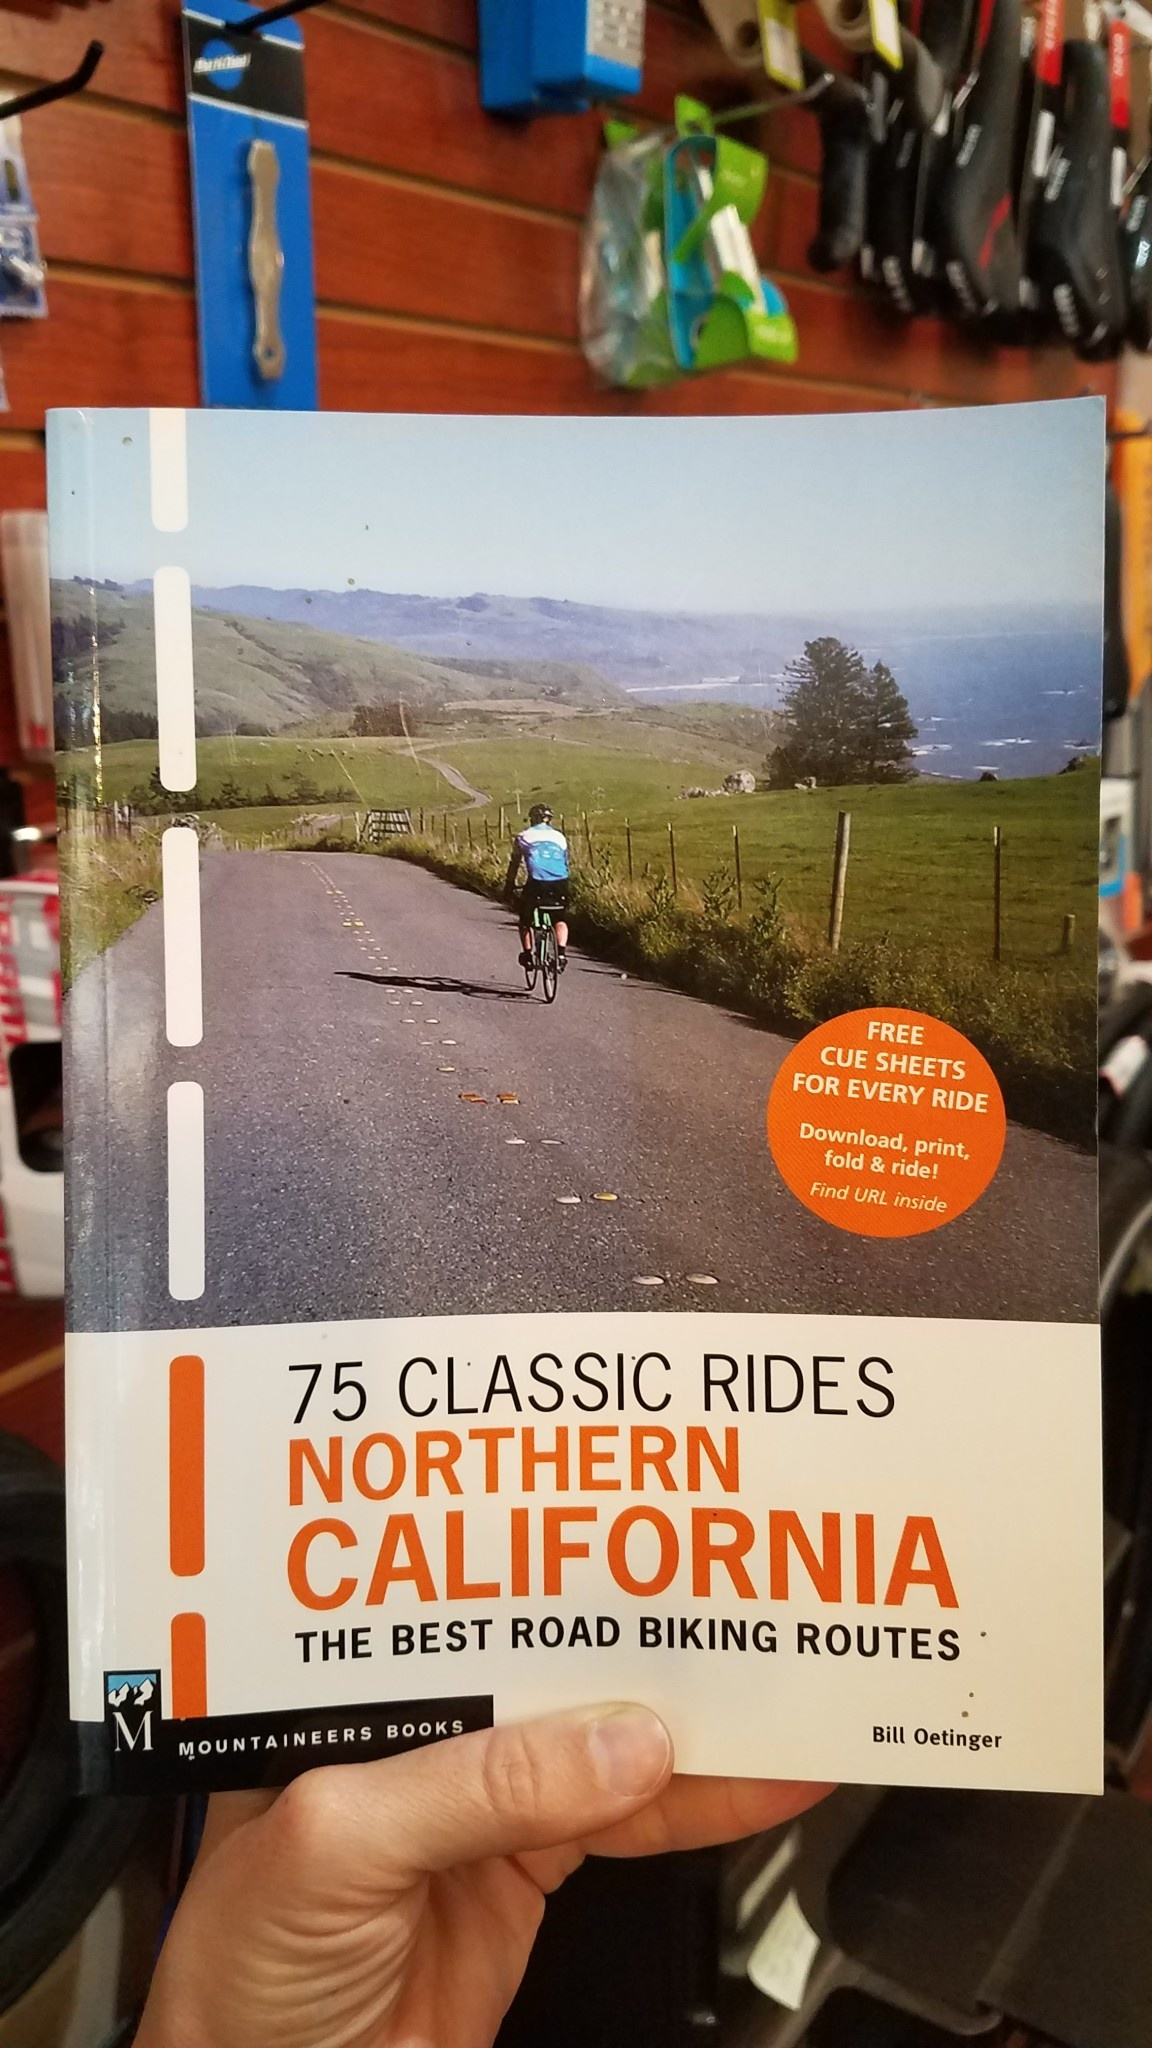 Mountaineers Books 75 Classic Rides Northern California